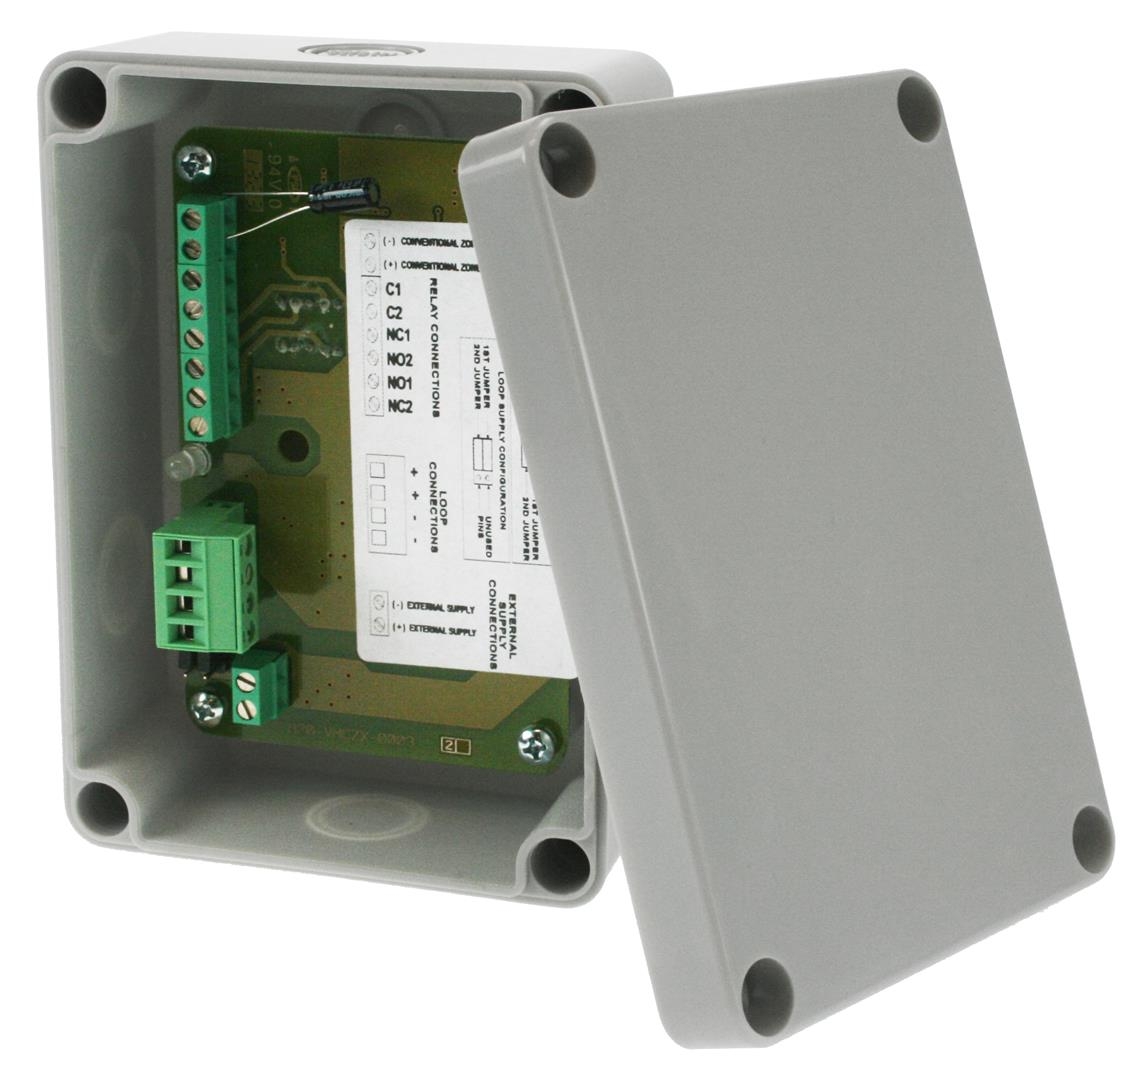 Conventional Zone Interface Module